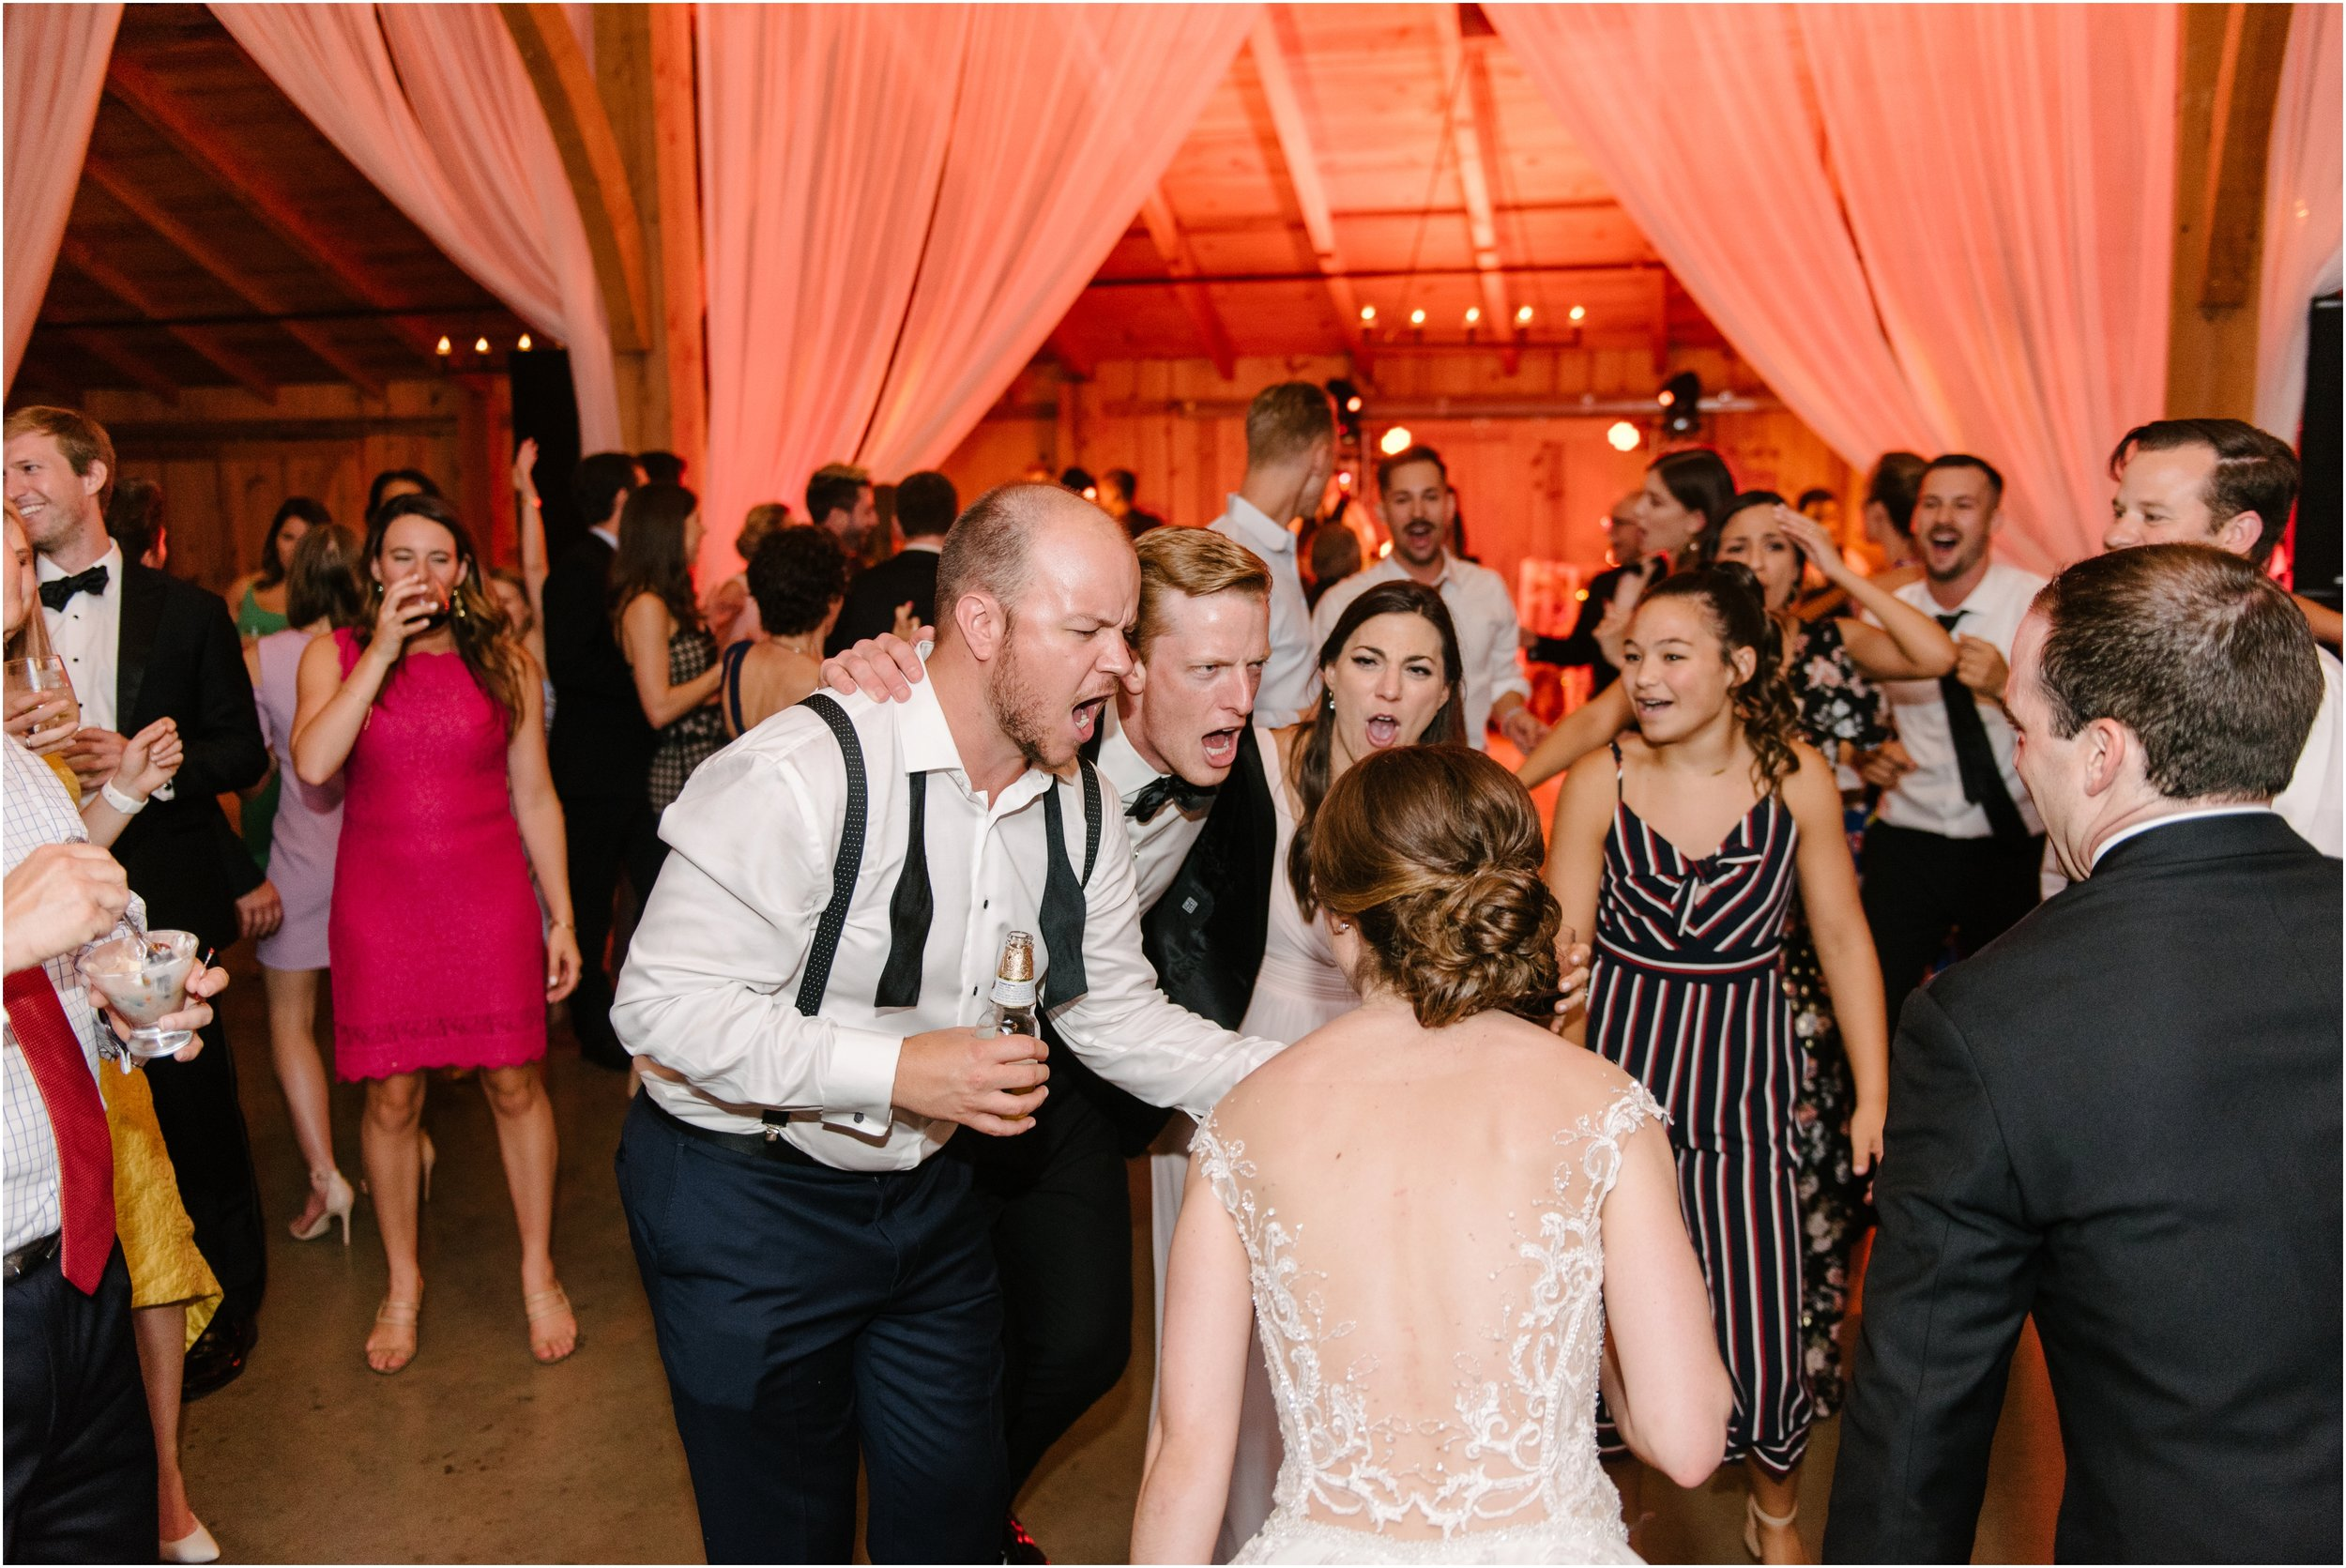 dallasweddingphotographer_fortworthweddingphotographer_texasweddingphotographer_mattandjulieweddings_whiterocklakewedding_KayleighClay_0044.jpg